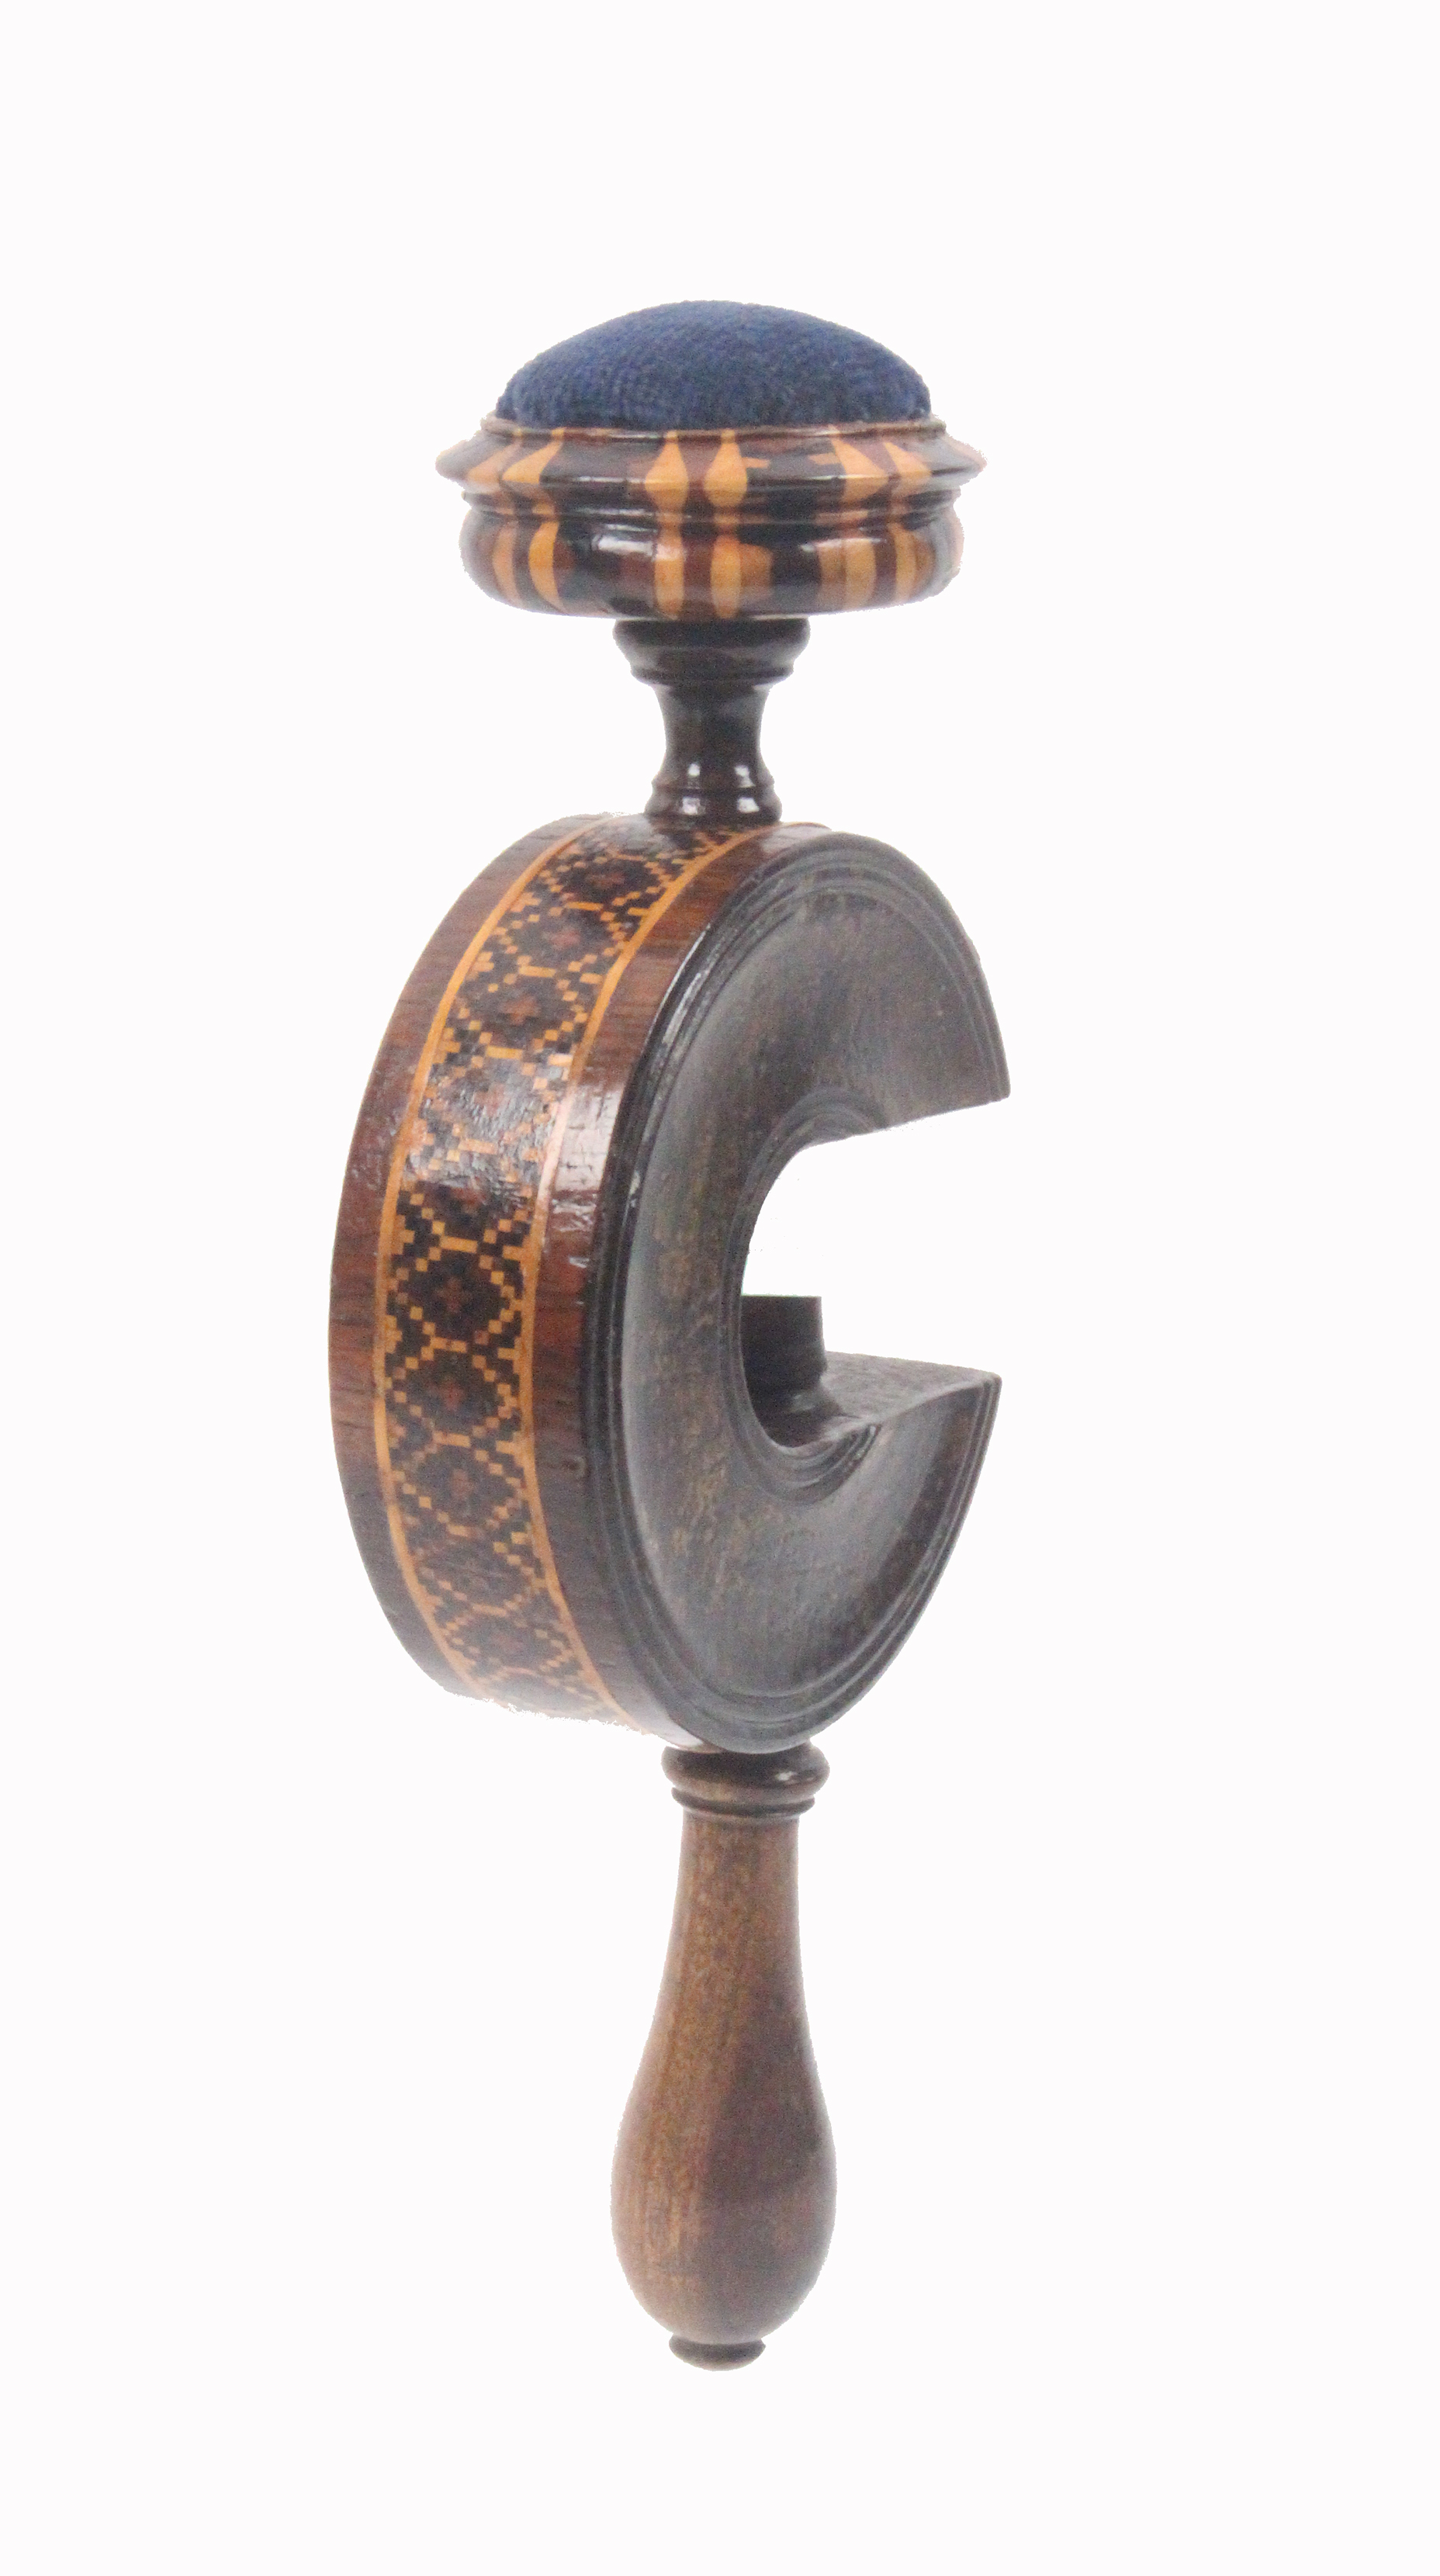 Lot 49 - Tunbridge ware - a rosewood sewing clamp, the 'C' form frame with a band of geometric mosaic below a